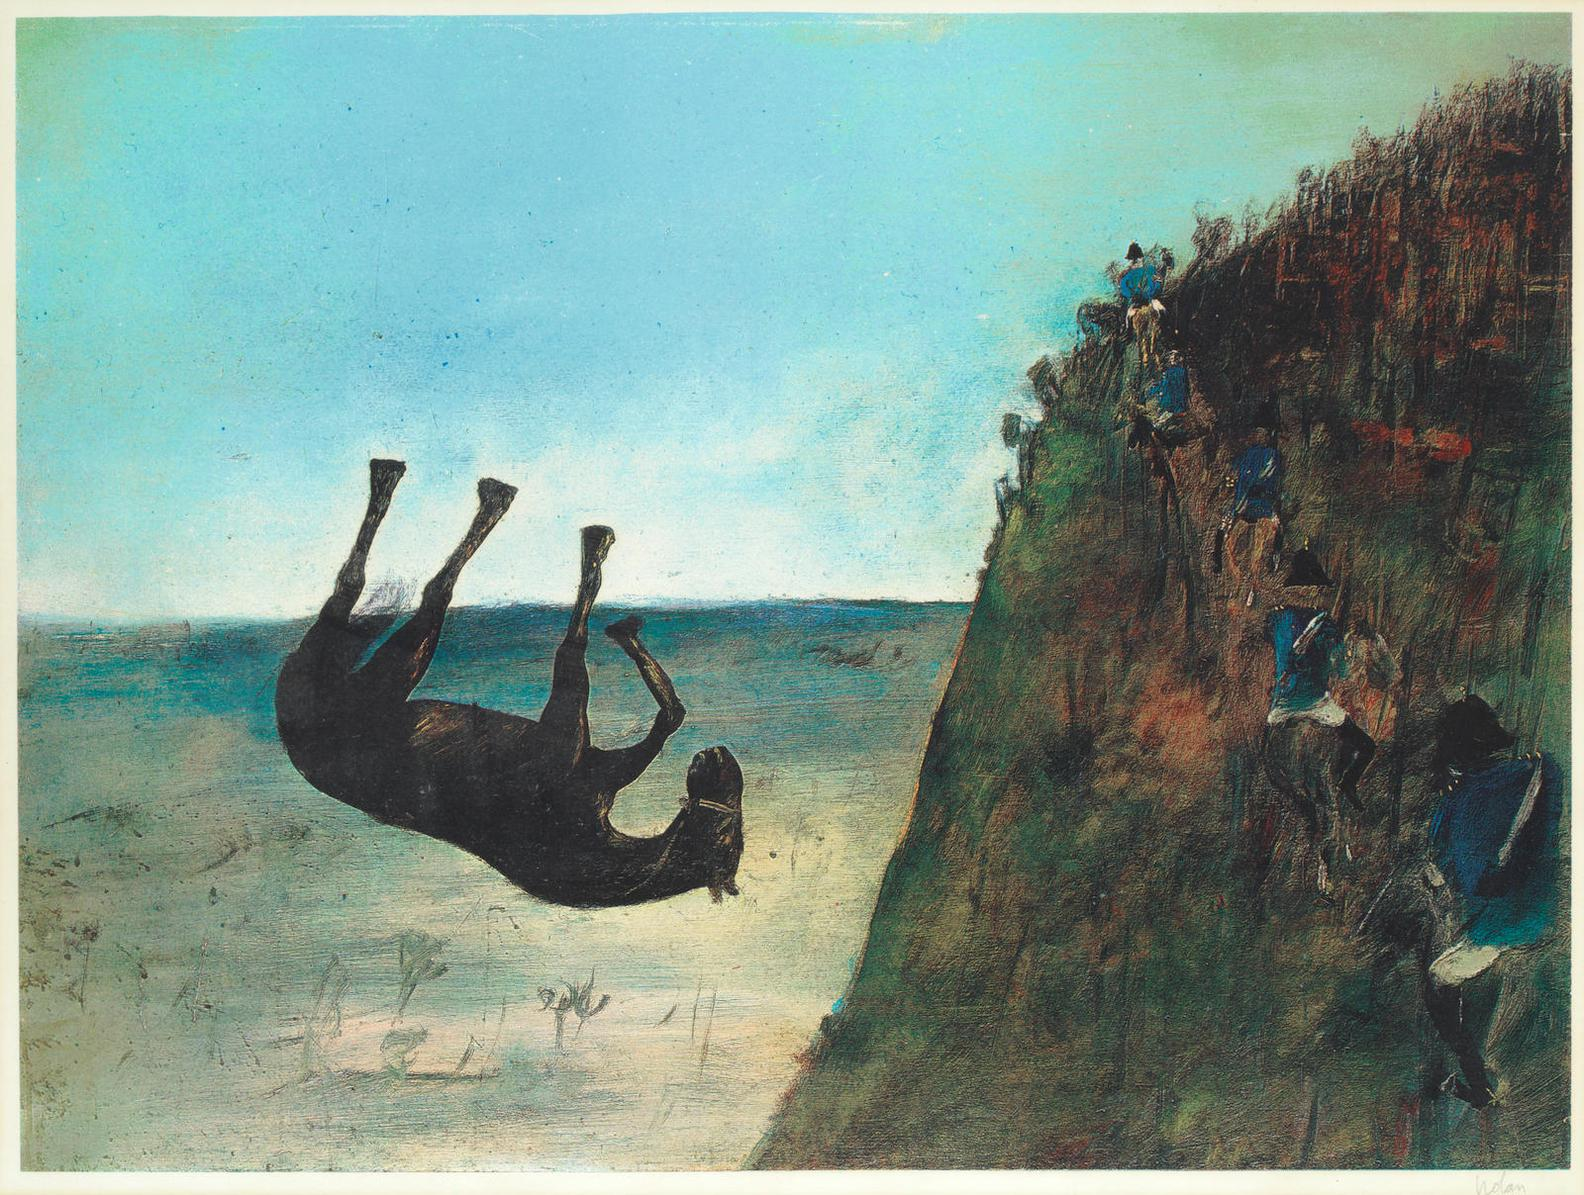 Sidney Nolan-The Slip, From Ned Kelly Series-1971